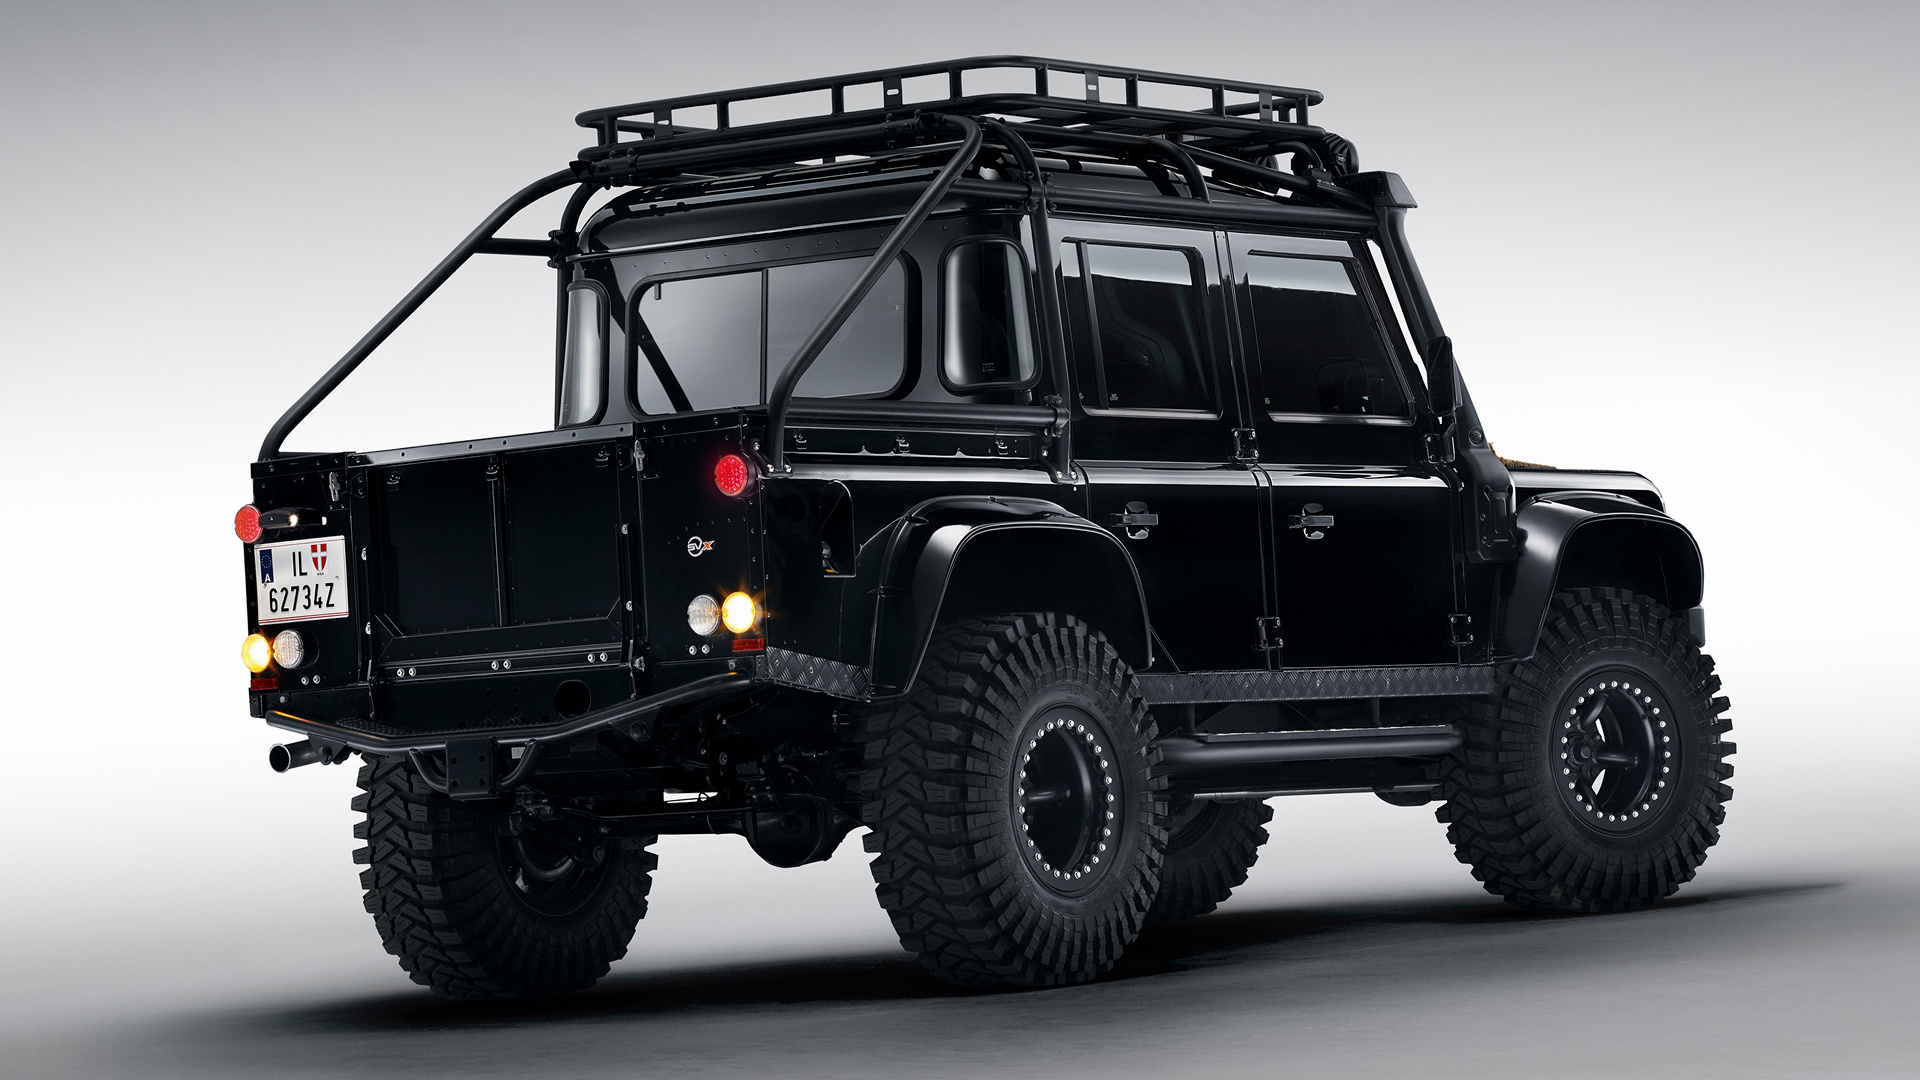 Land Rover Defender 007 Spectre (2015) Wallpapers and HD ...